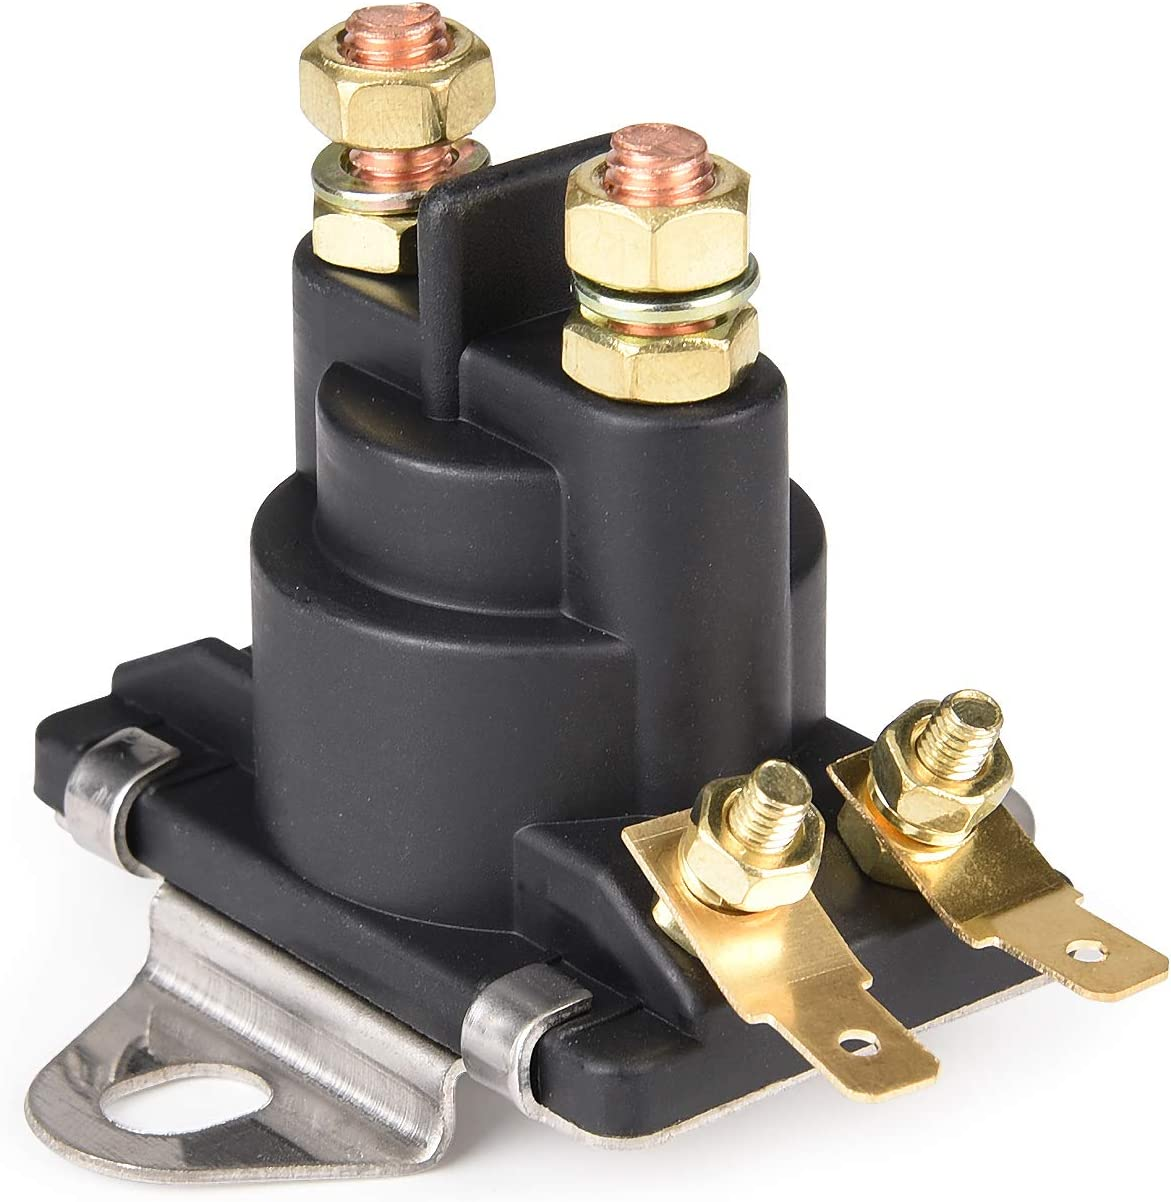 MaySpare 12V Power Trim Solenoid Switch For Mercury Mariner Outboard Motors 35-275 HP 89-846070 89-94318 MerCruiser 89-96158T